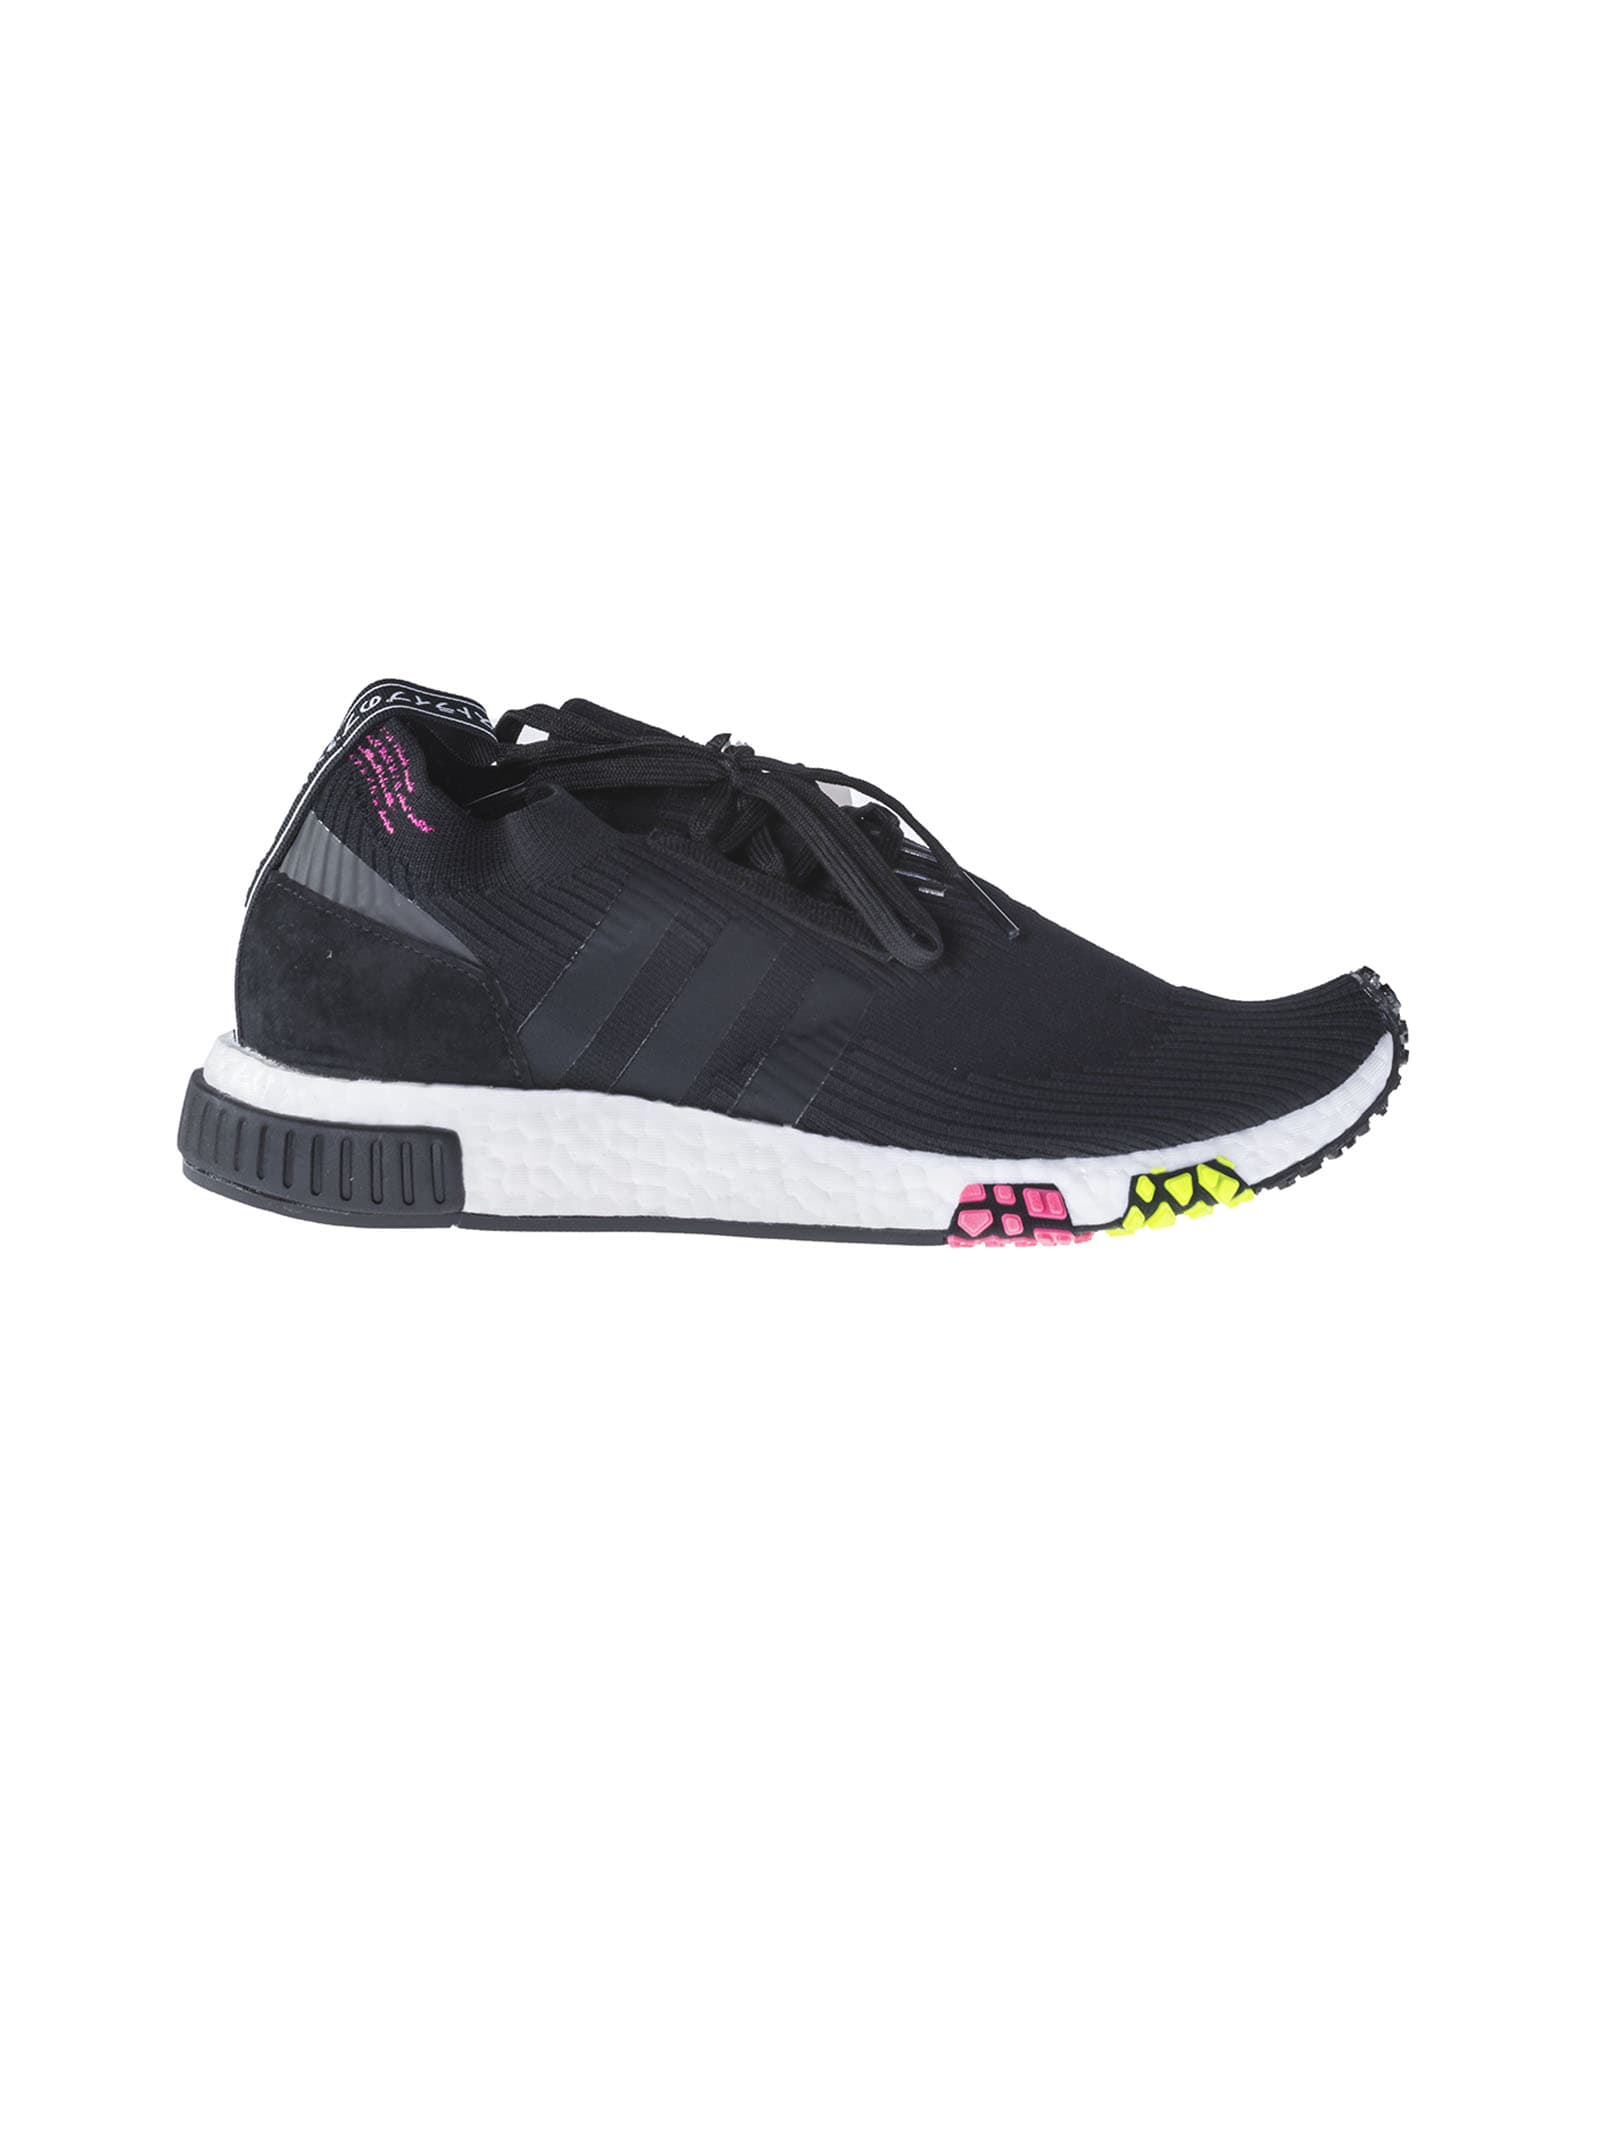 nouvelle arrivee a3b6f 55abe Adidas Nmd Racer Sneakers